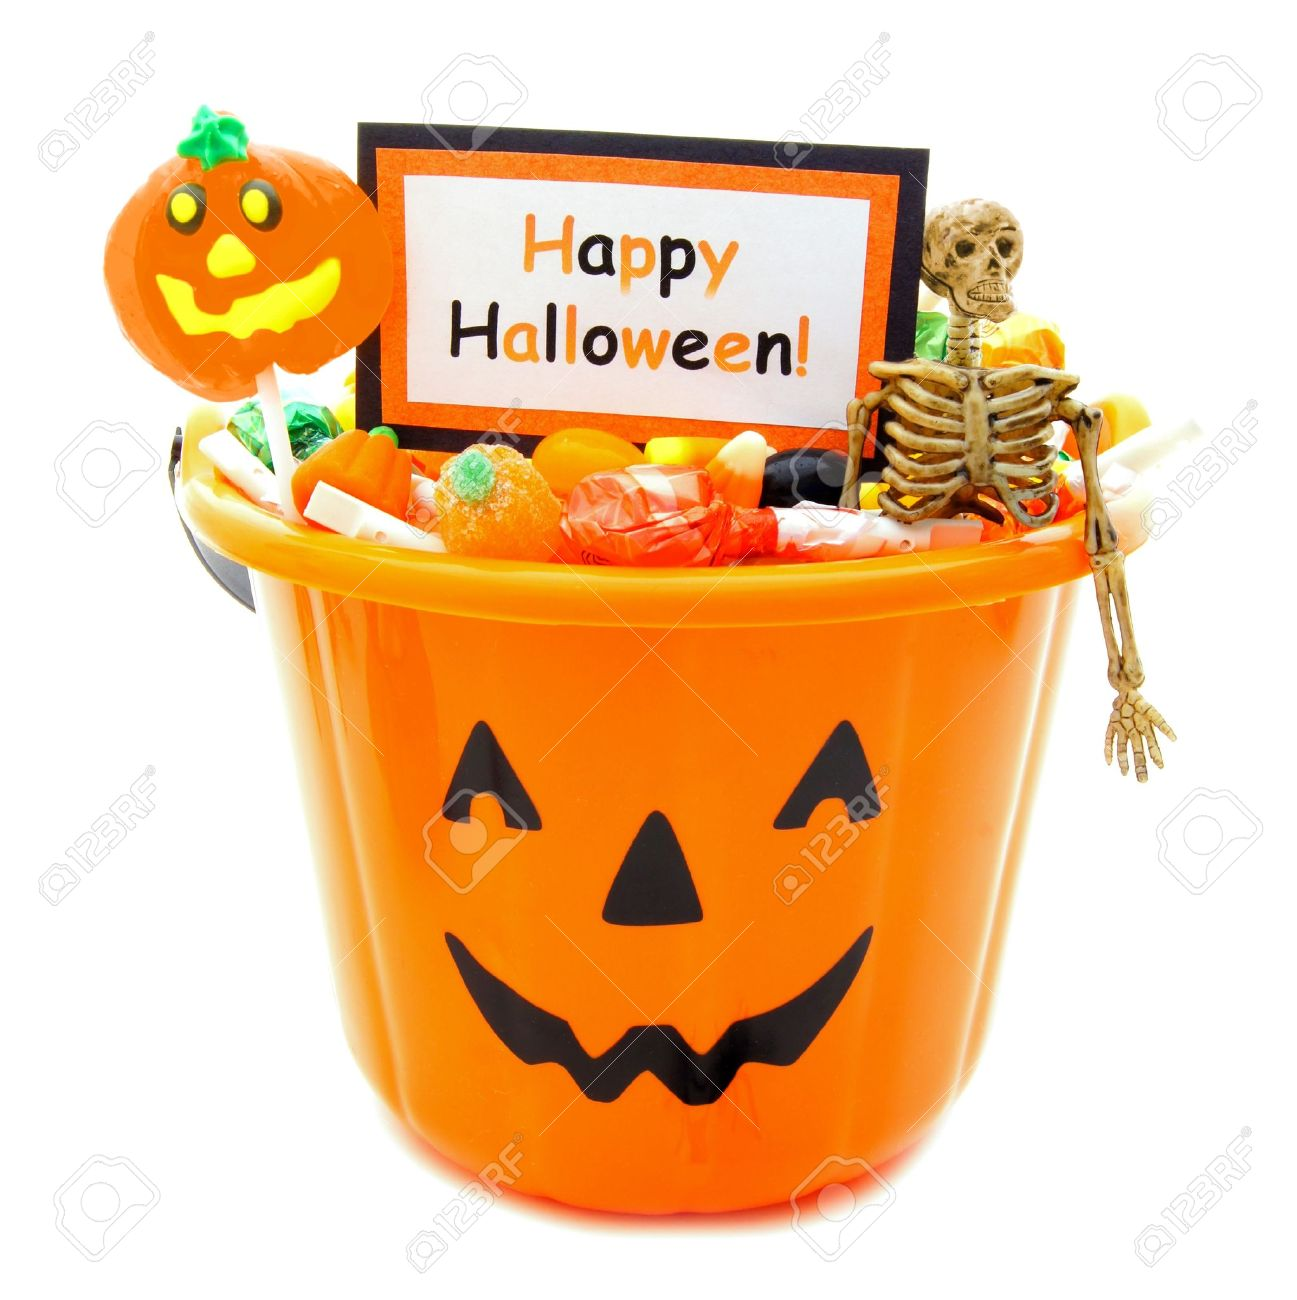 halloween candy holder full of candy with happy halloween tag